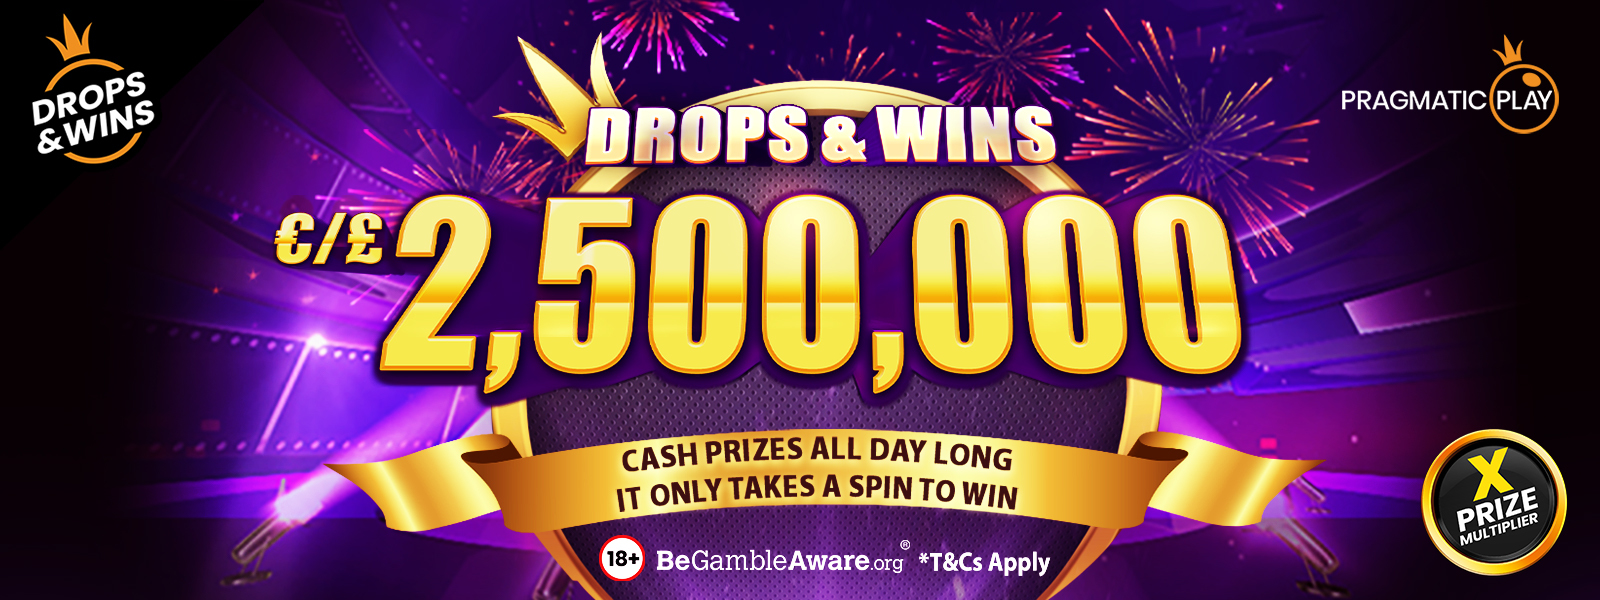 Wide big 1600x600 with prize multiplier